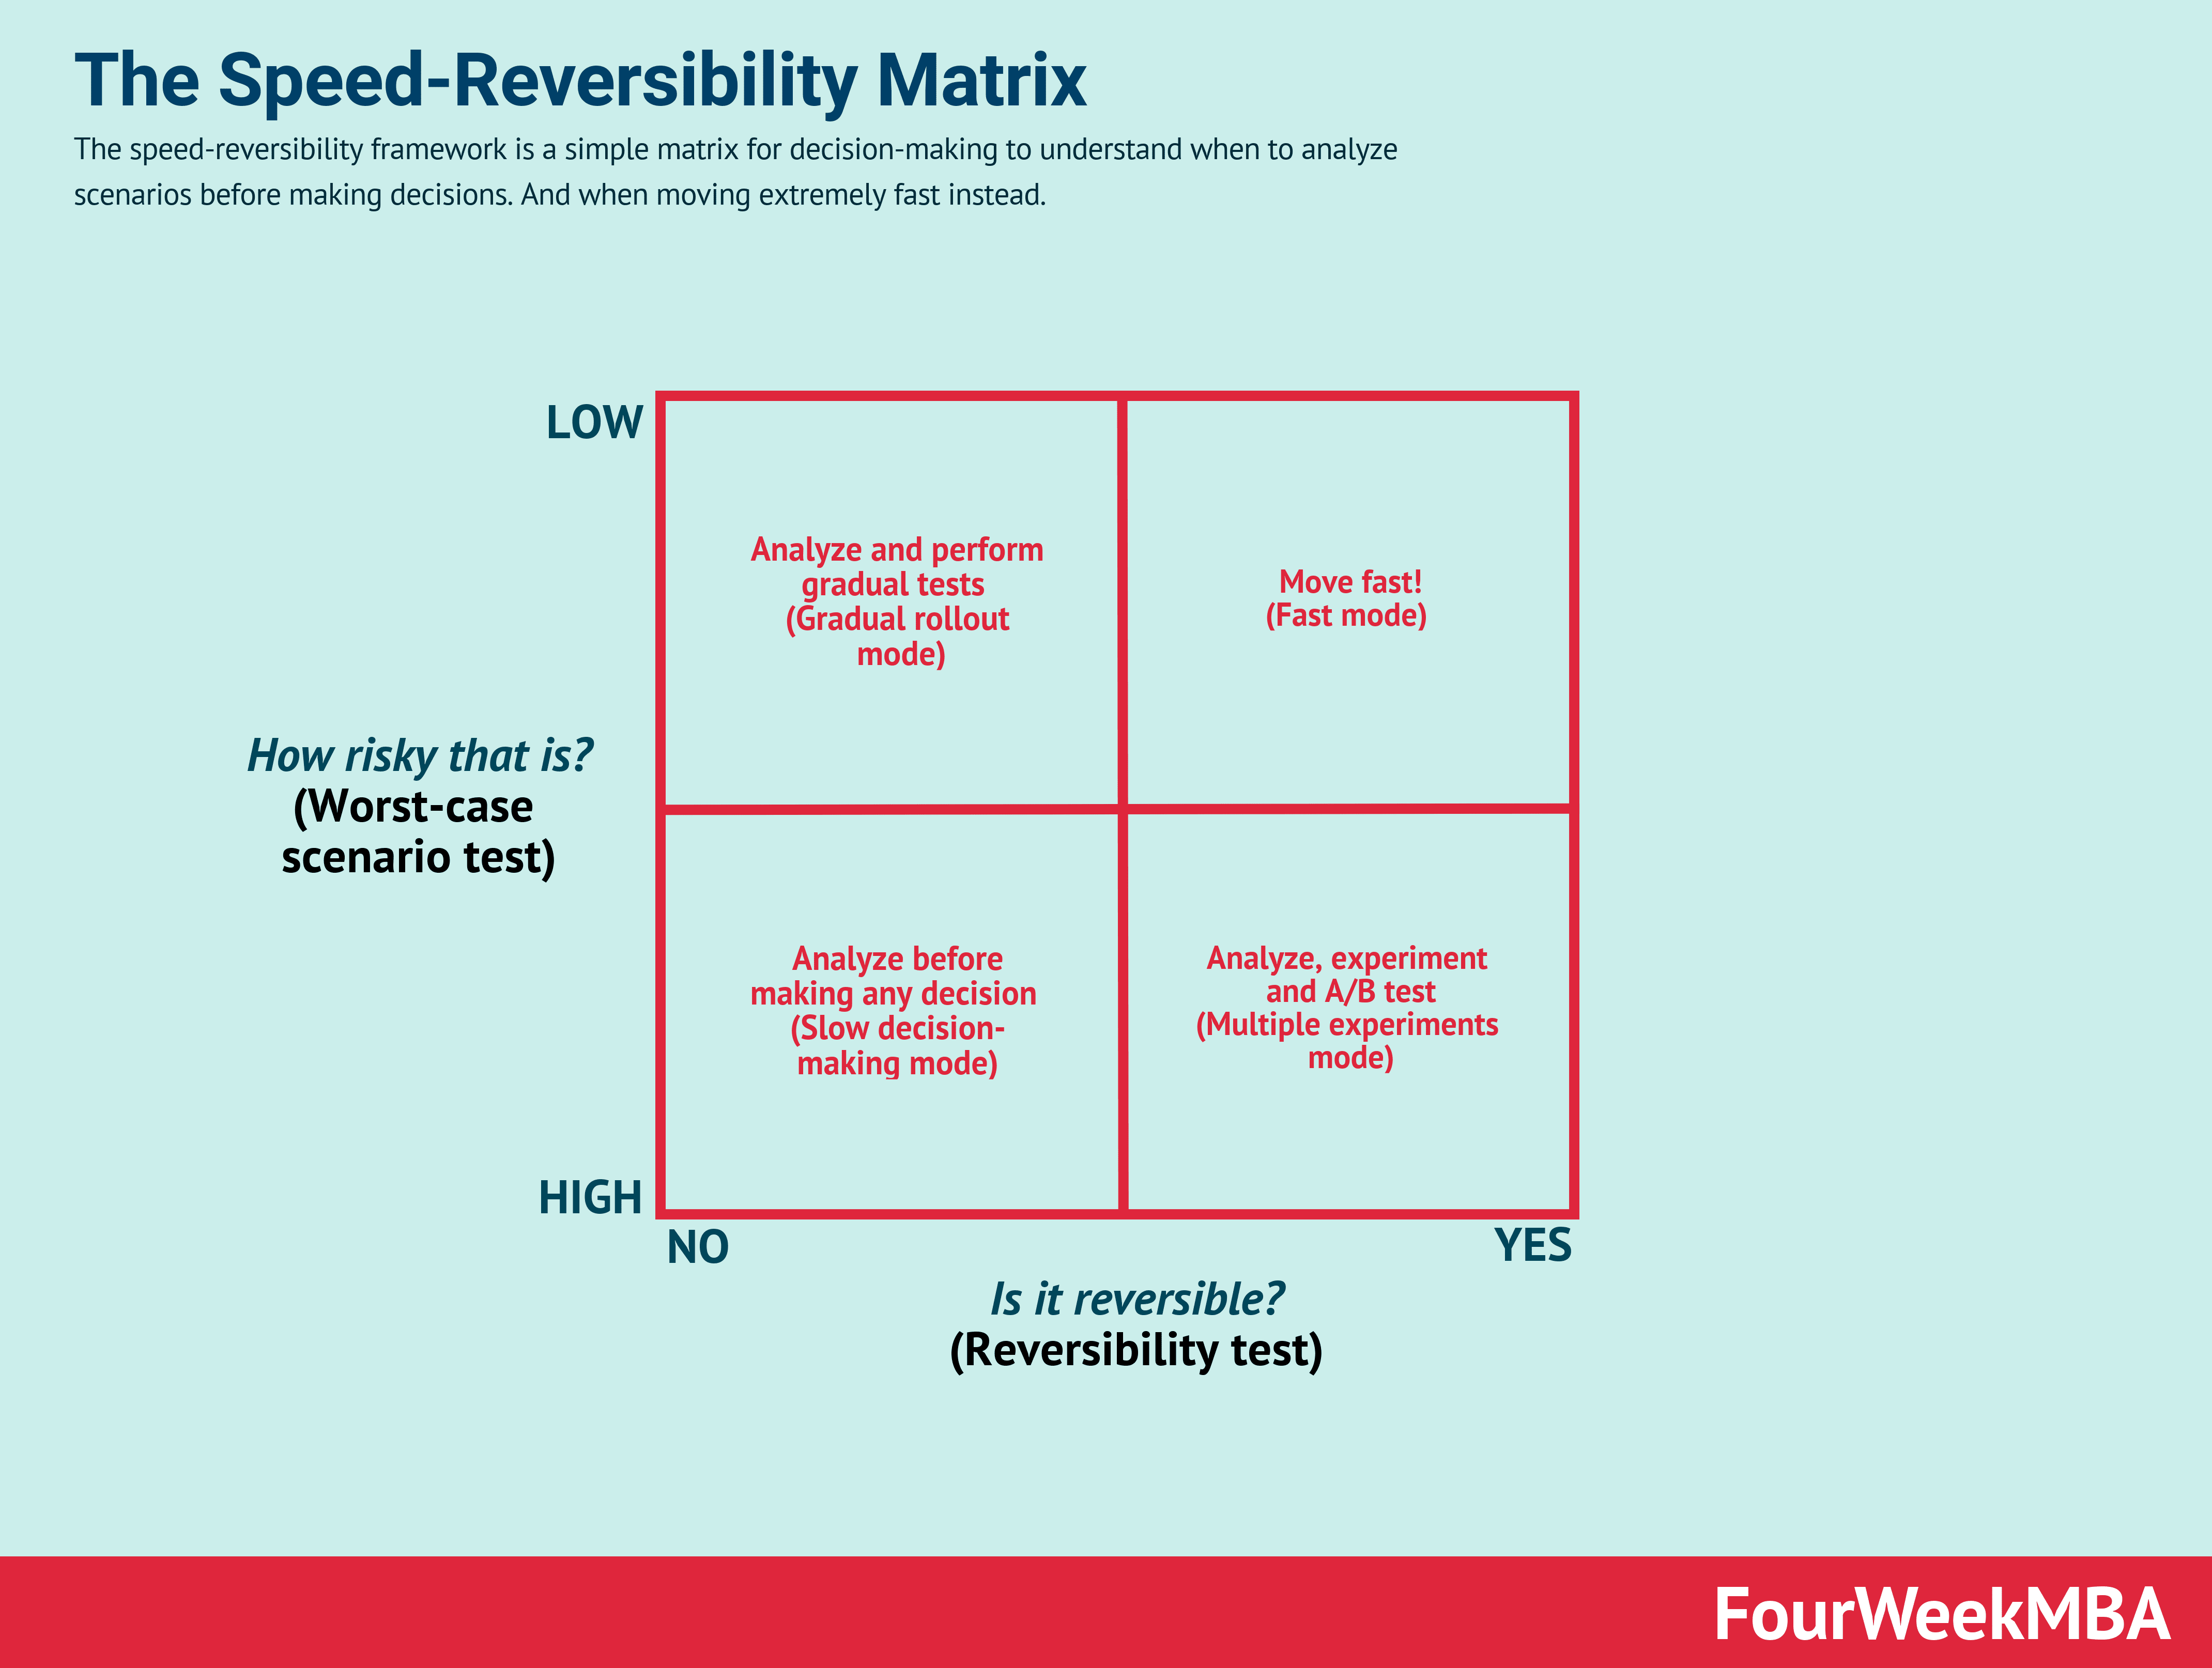 The Speed-Reversibility Decision-Making Matrix